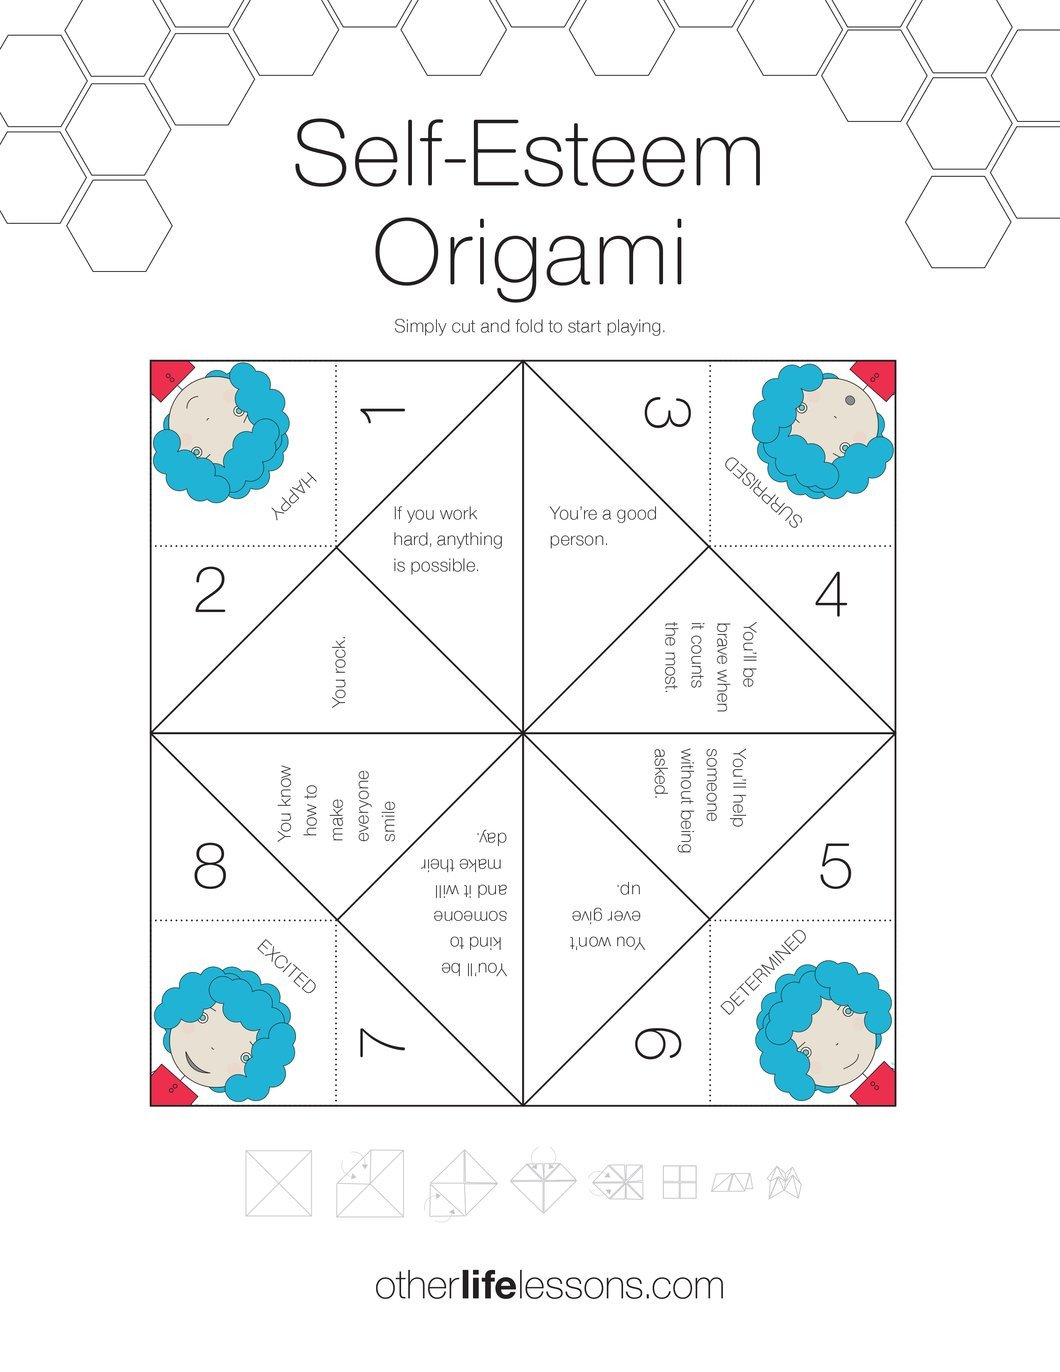 Self Esteem Activities Worksheets Self Esteem origami Game Free Printable – Other Life Lessons